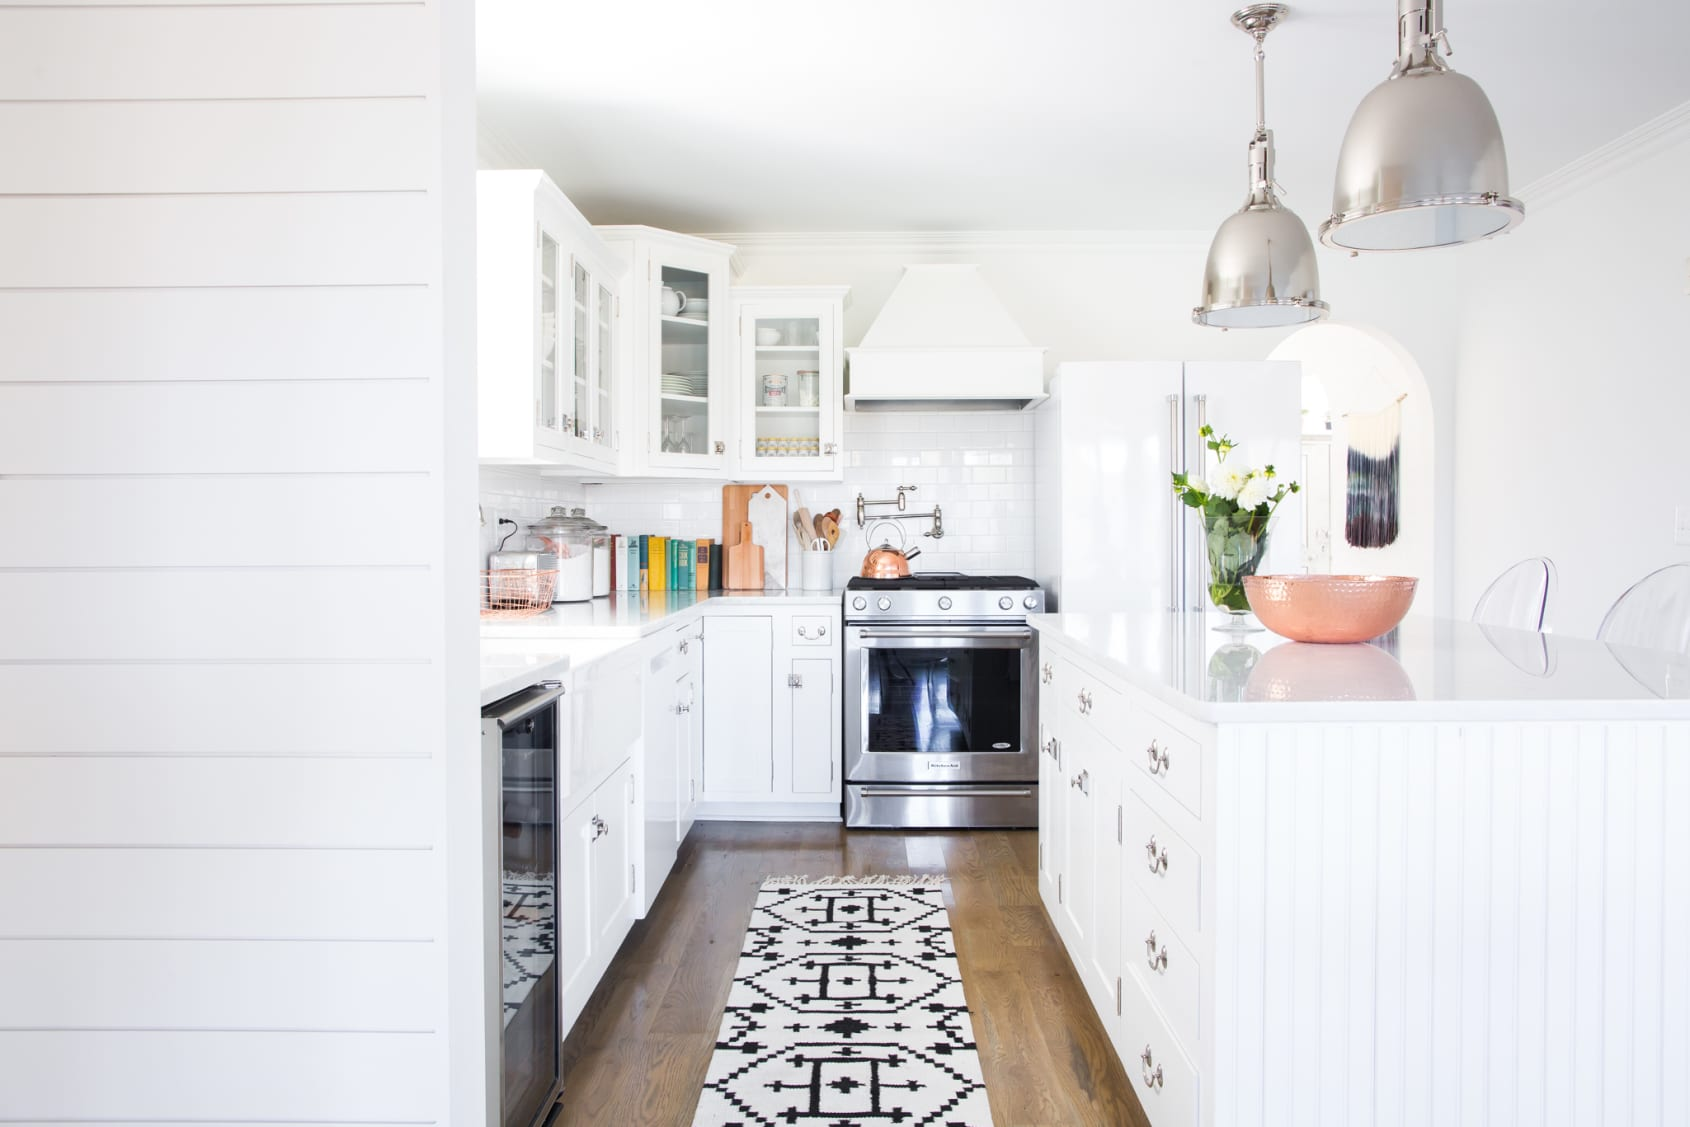 - Kitchen Decorating Trends To Avoid - 2020 Kitchn